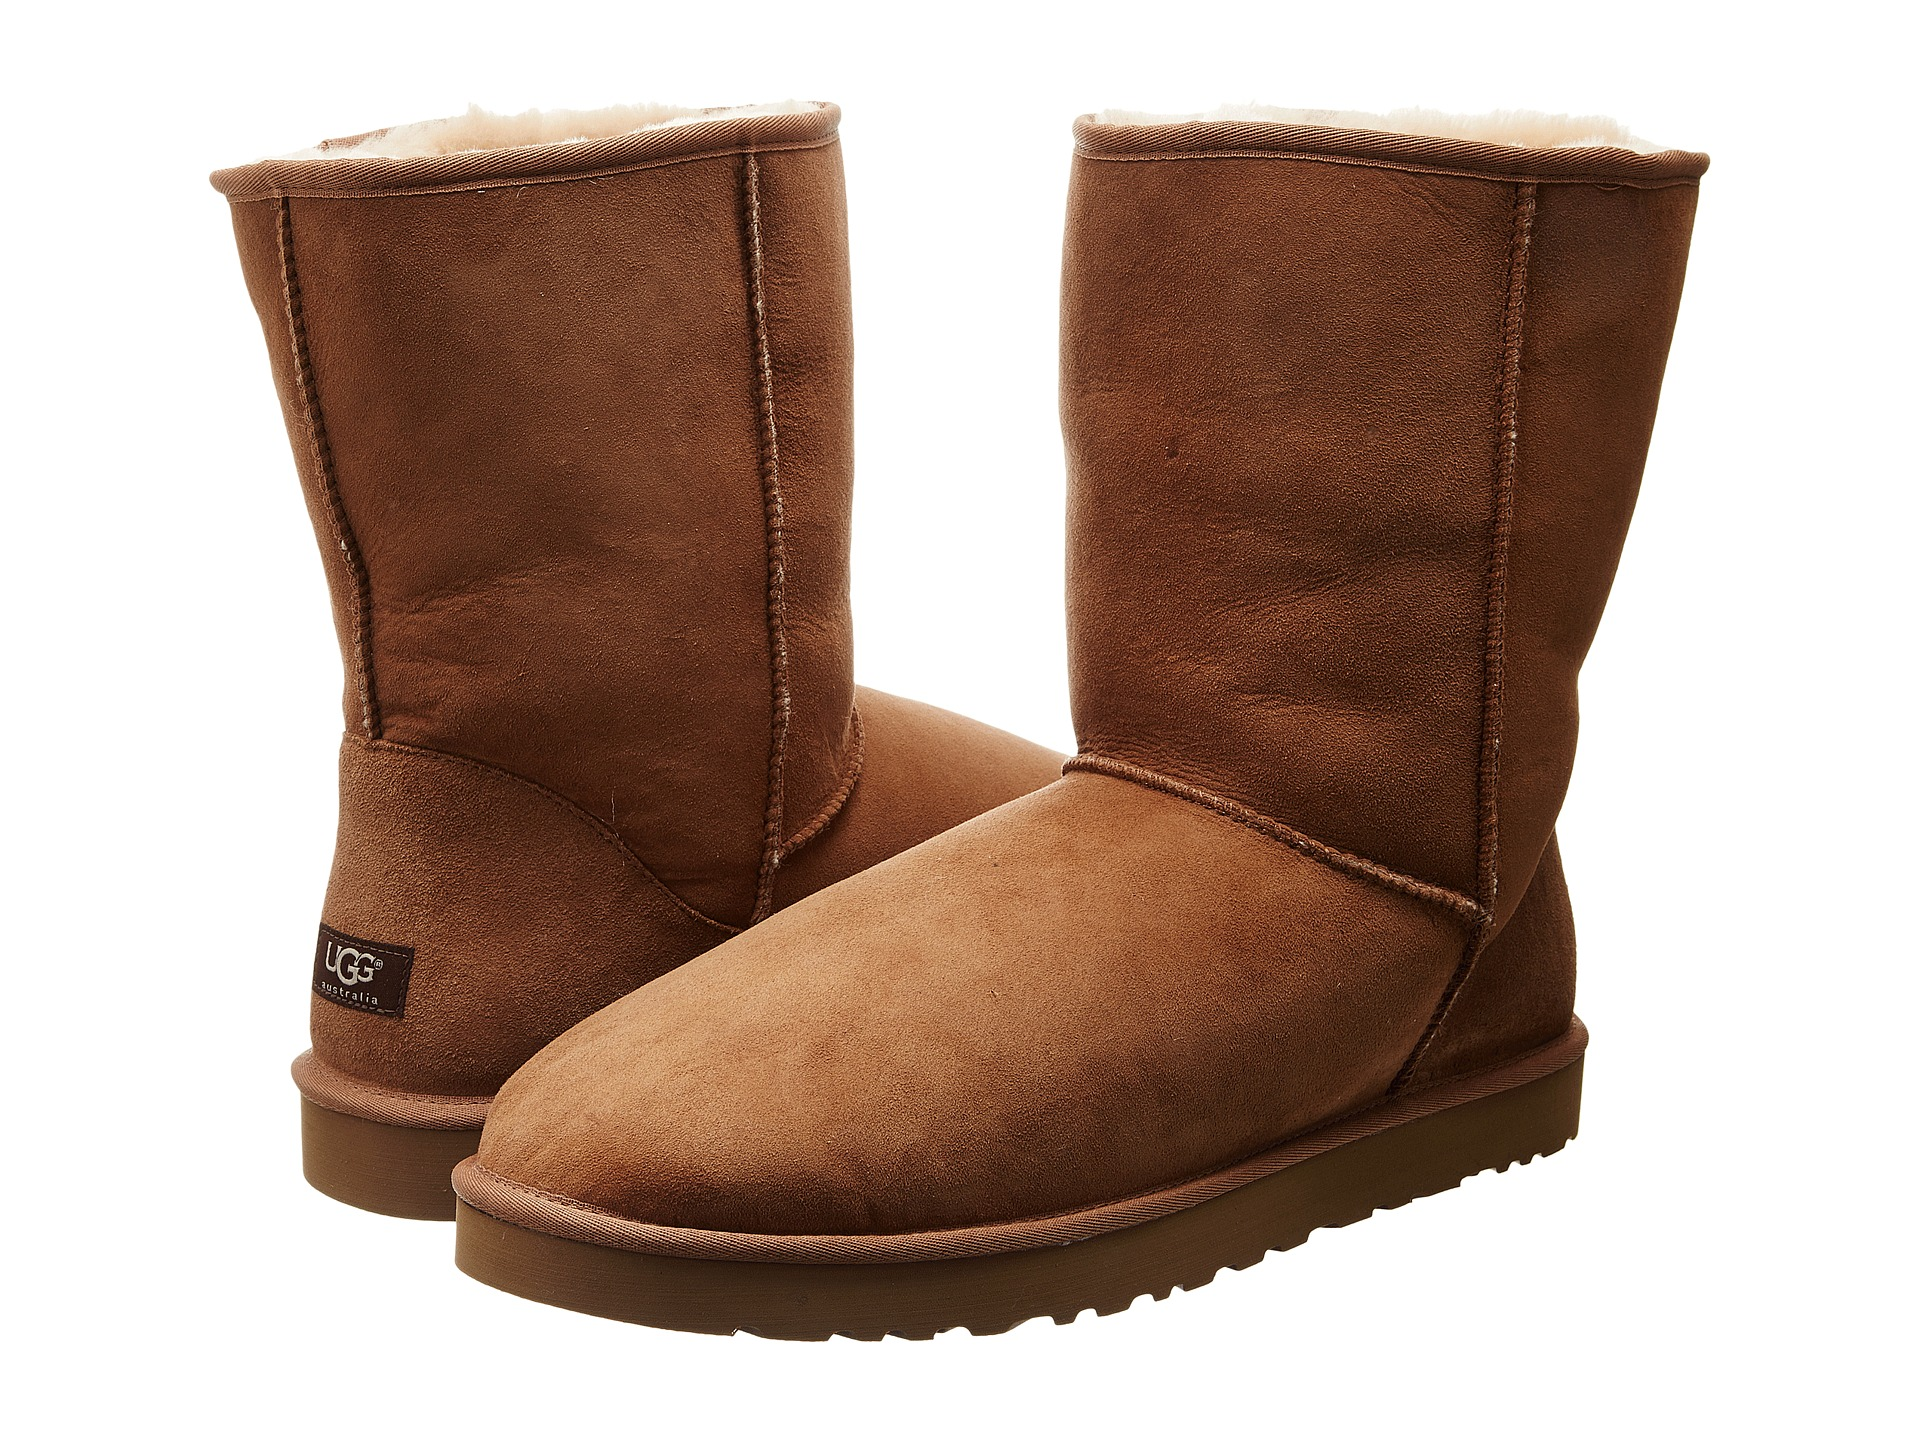 sheepskin boots mens chestnut ugg boots ugg classic short boots. Black Bedroom Furniture Sets. Home Design Ideas